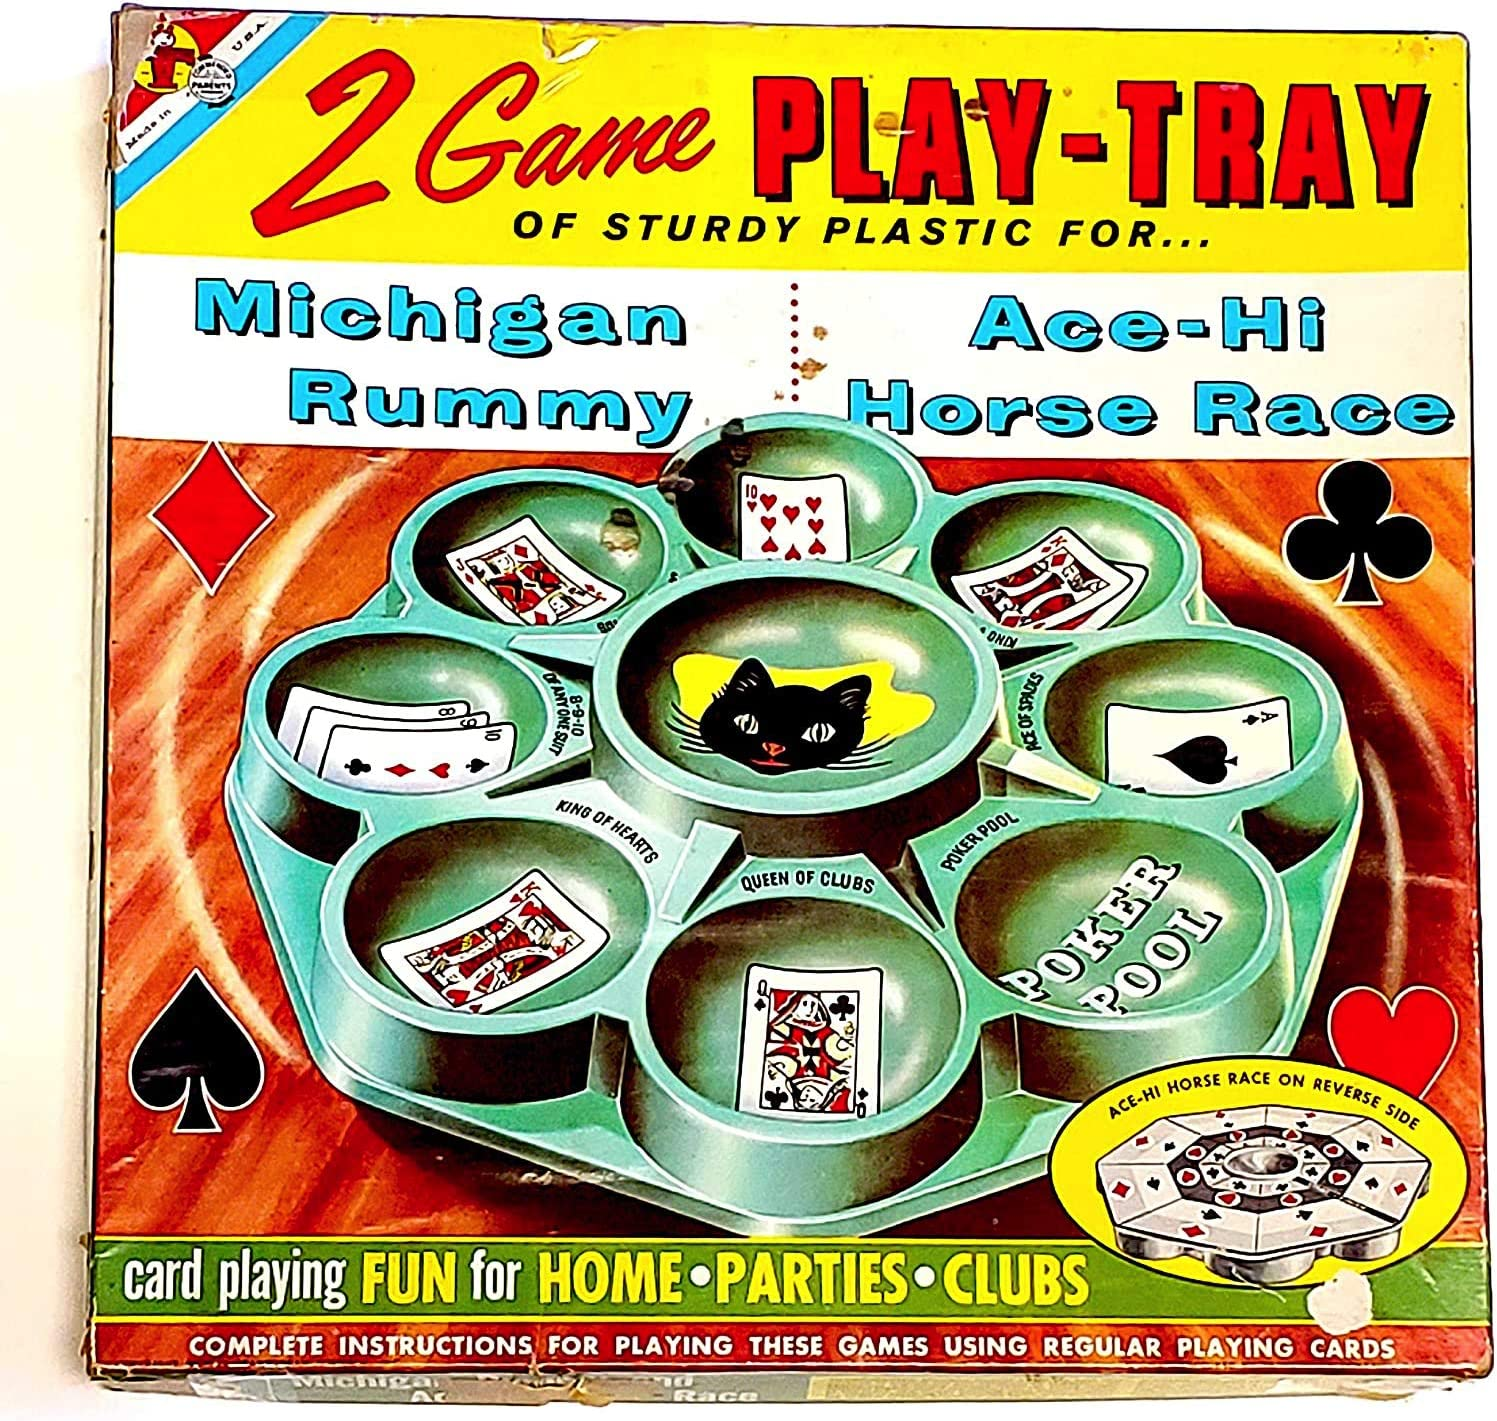 Vintage Reversible Two-Game Play Tray for Michigan Rummy and Ace-Hi Horse Race